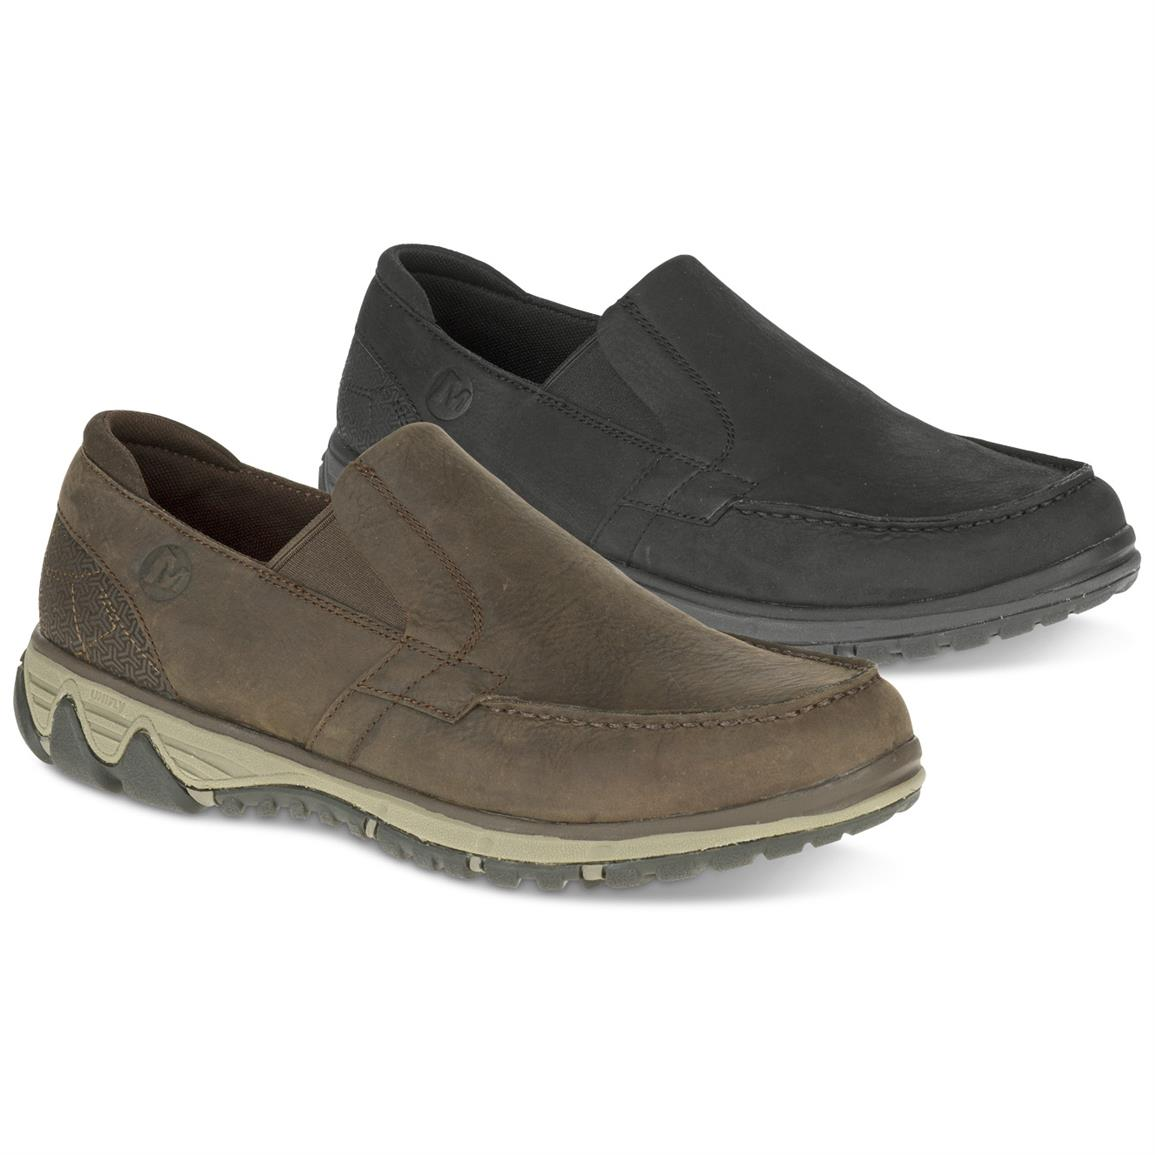 Merrell Men's All Out Blazer Moc Slip-on Shoes